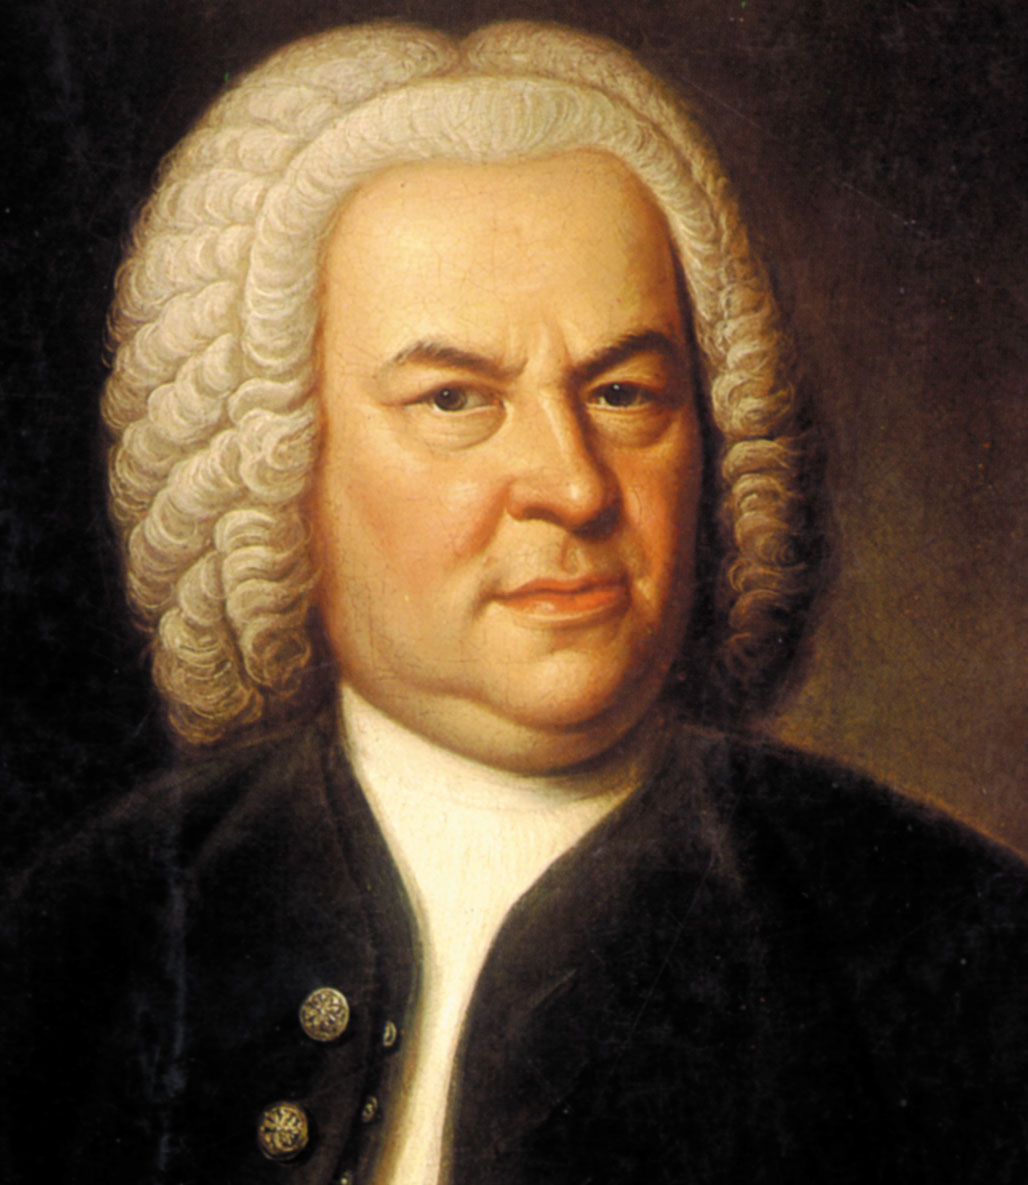 the life and music of johann sebastian bach Listen to music from johann sebastian bach like unaccompanied cello suite no 1 in g major, bwv 1007: i prélude, ave maria & more find the latest tracks, albums.